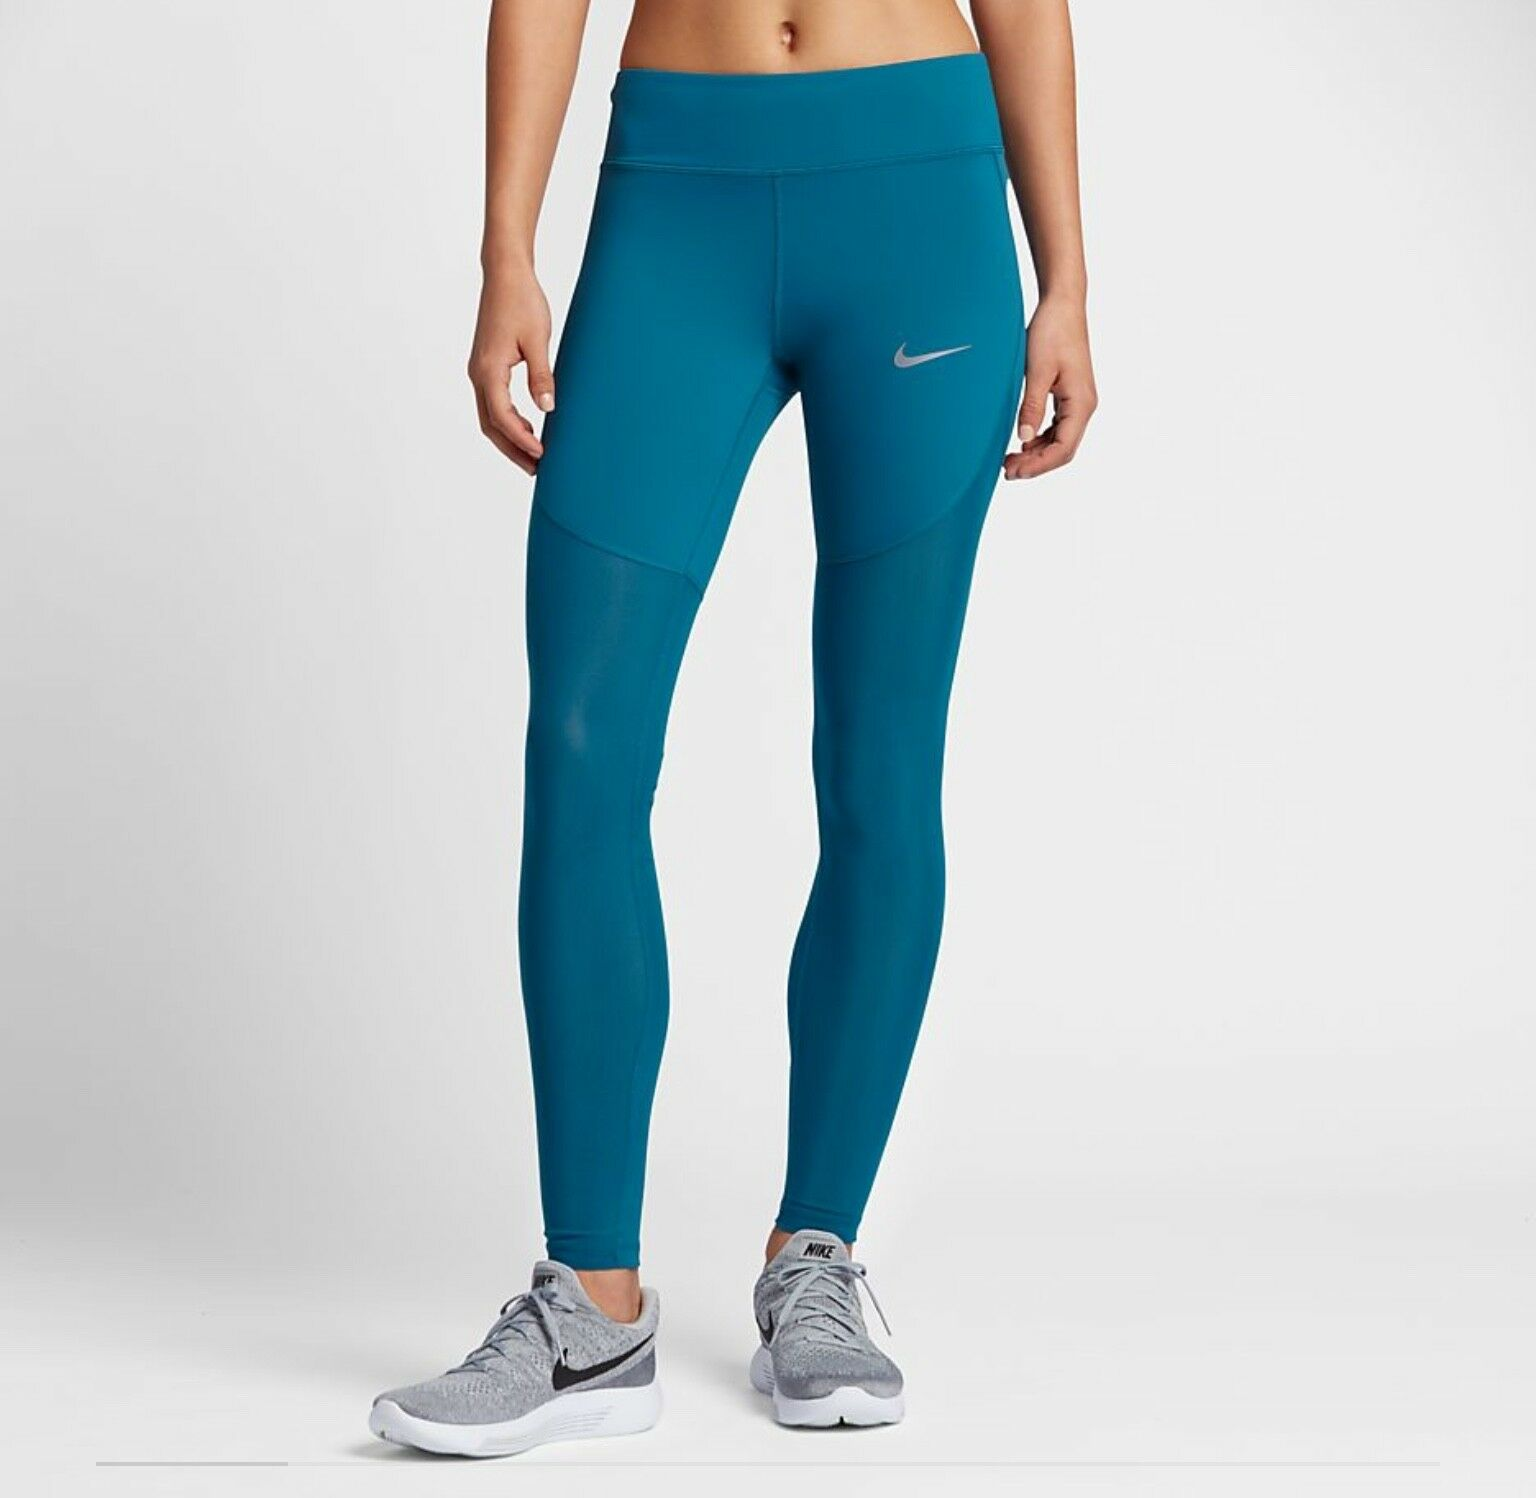 NIKE EPIC LUX WOMEN'S RUNNING TIGHTS LEGGING GYM TRAINING 905678-457 Xtra Small